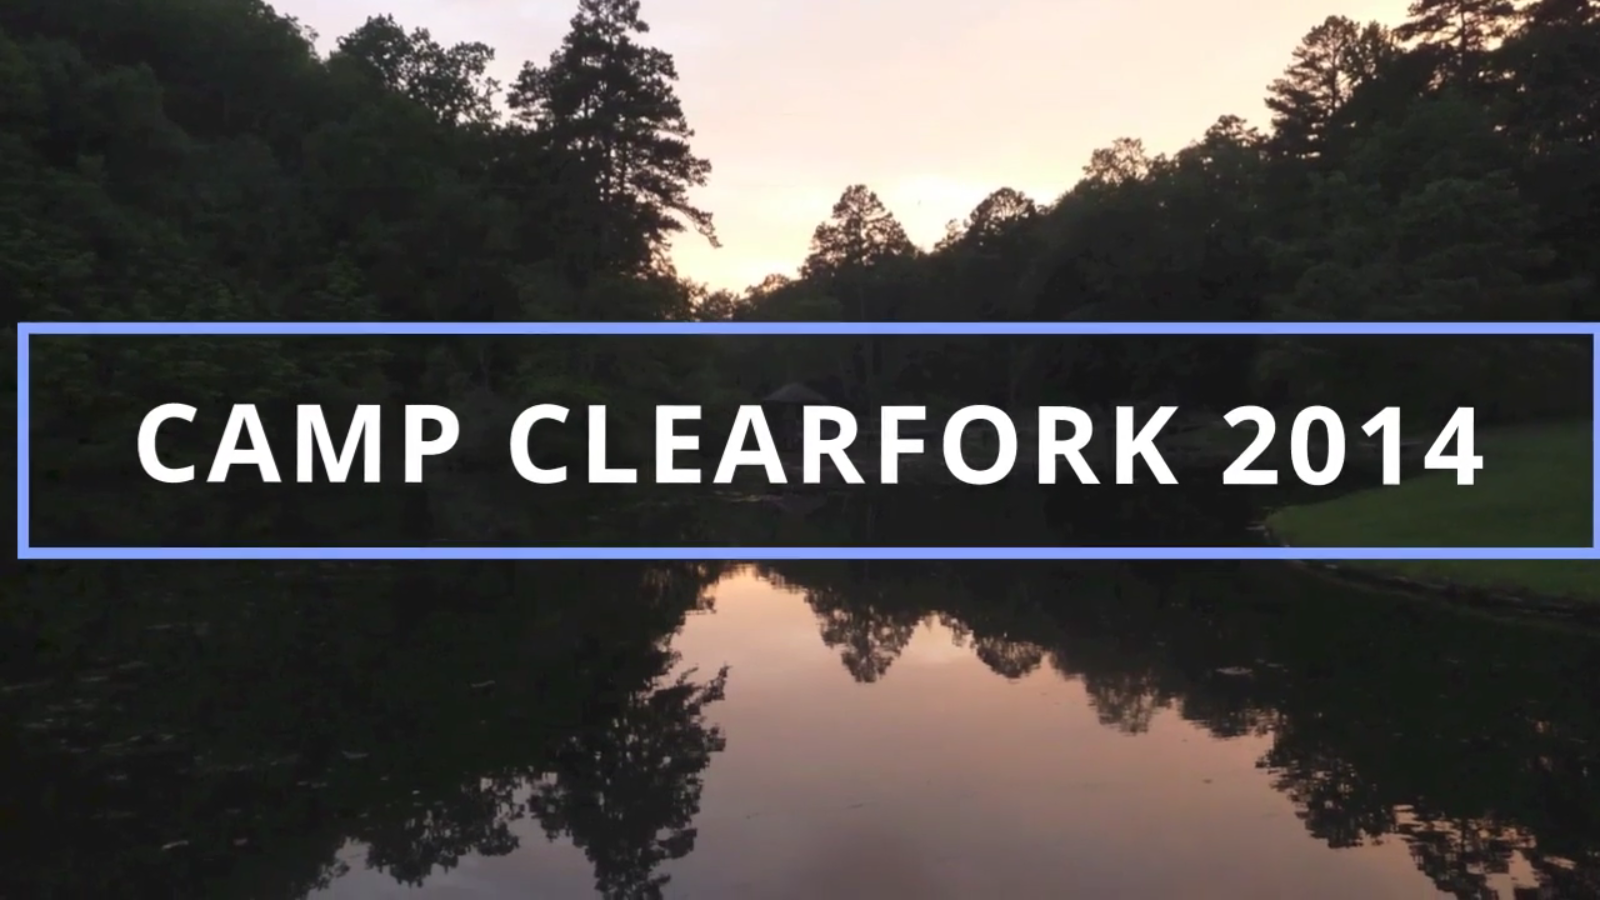 Camp Clearfork 2014